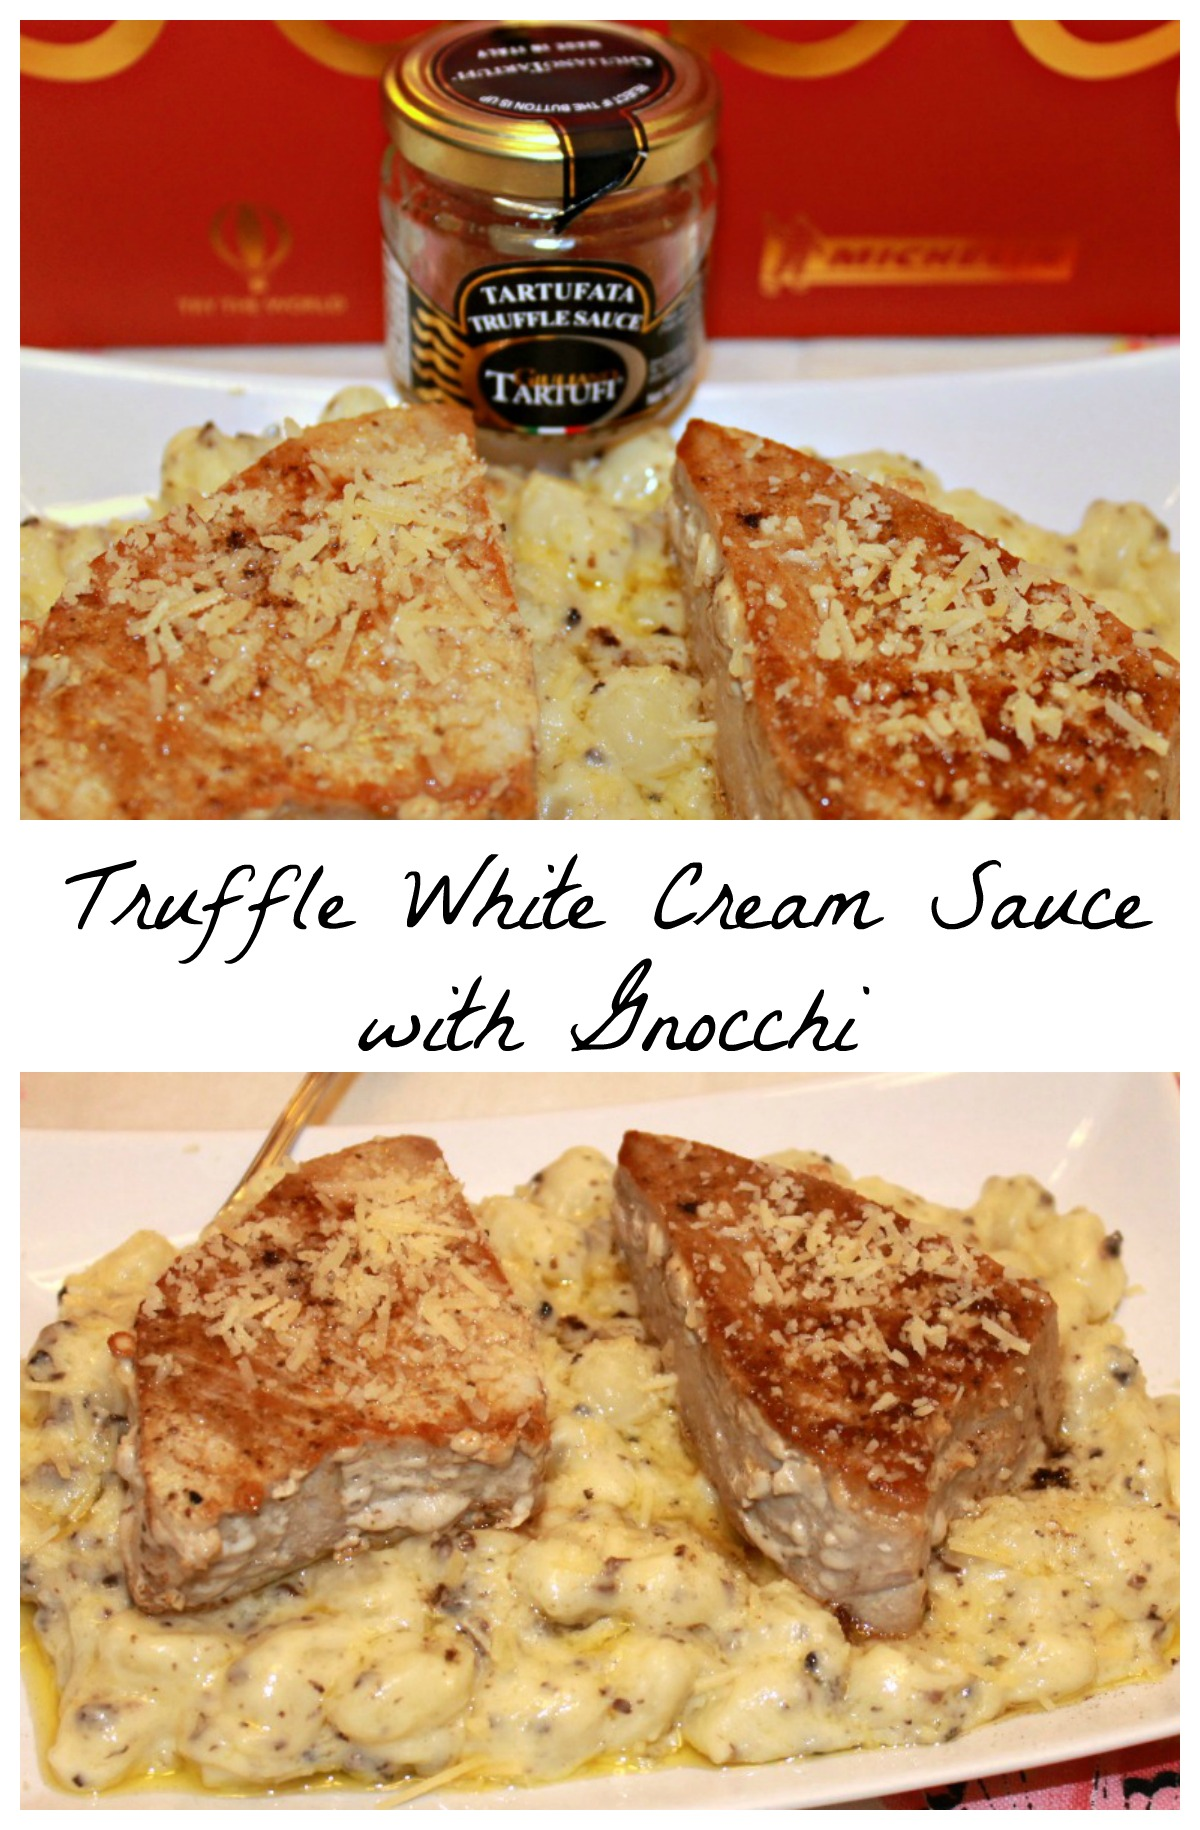 Truffle White Cream Sauce with Gnocchi Recipe